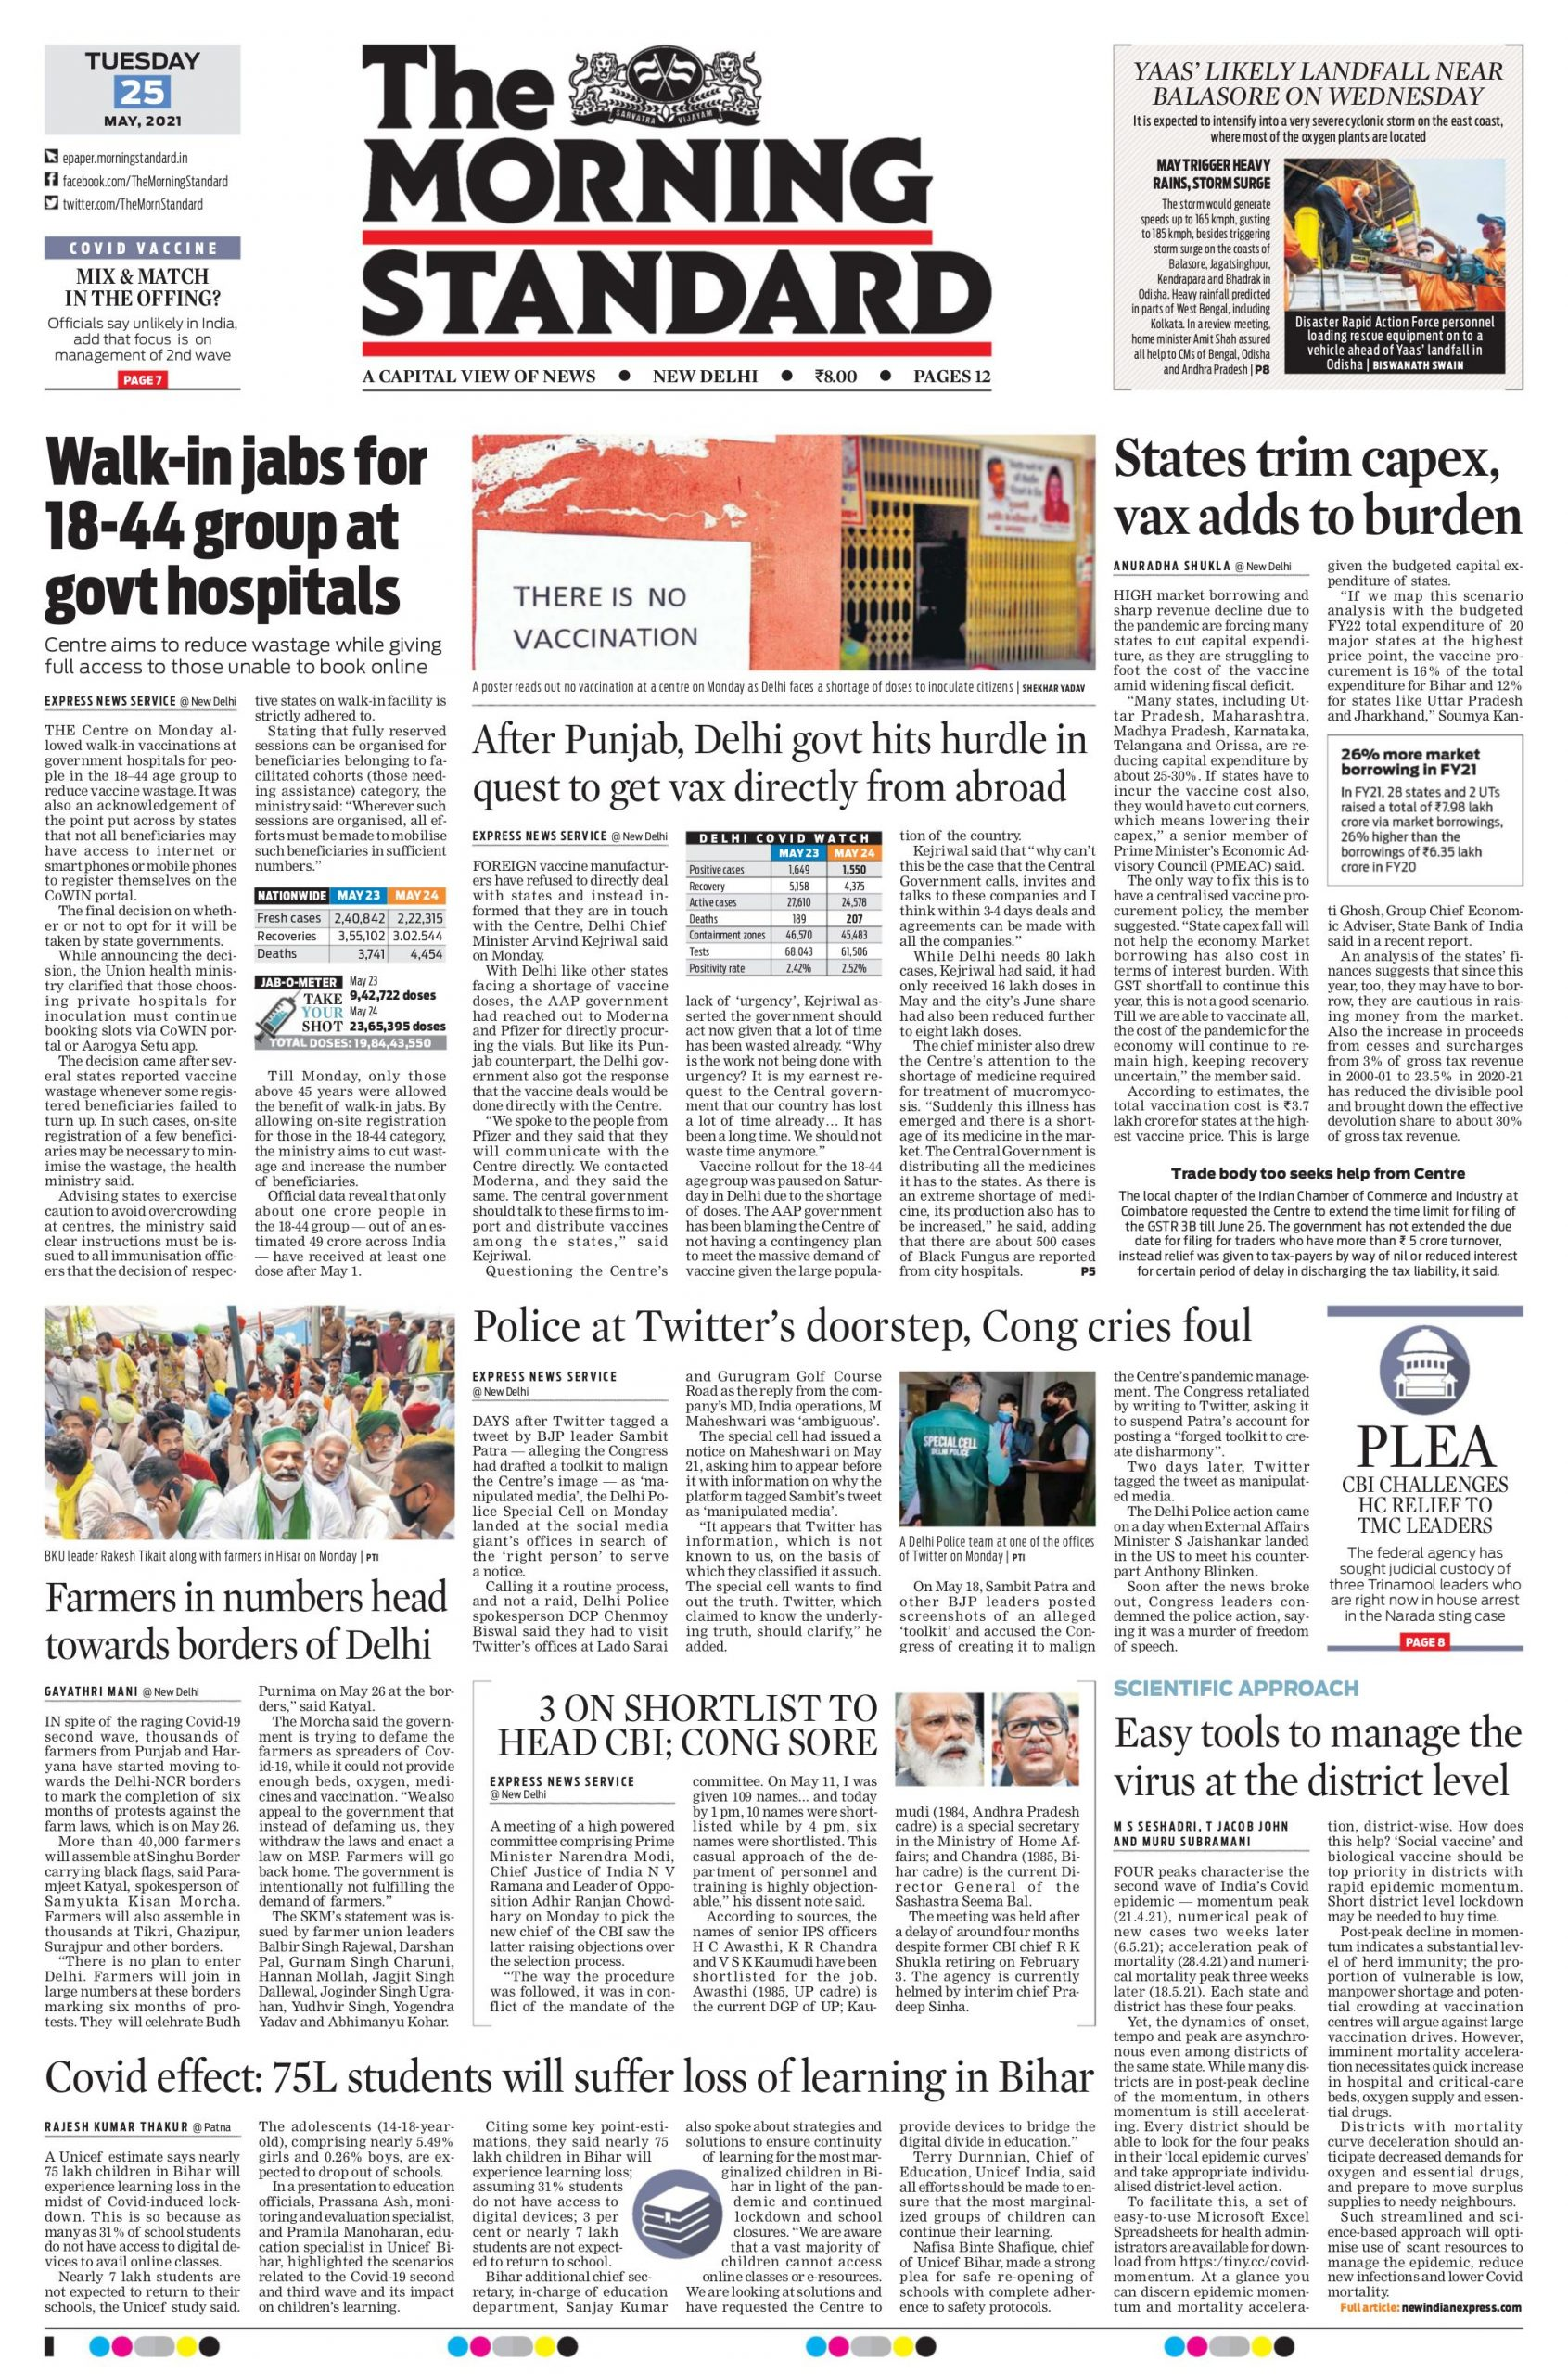 The Morning Standard 25th May 2021